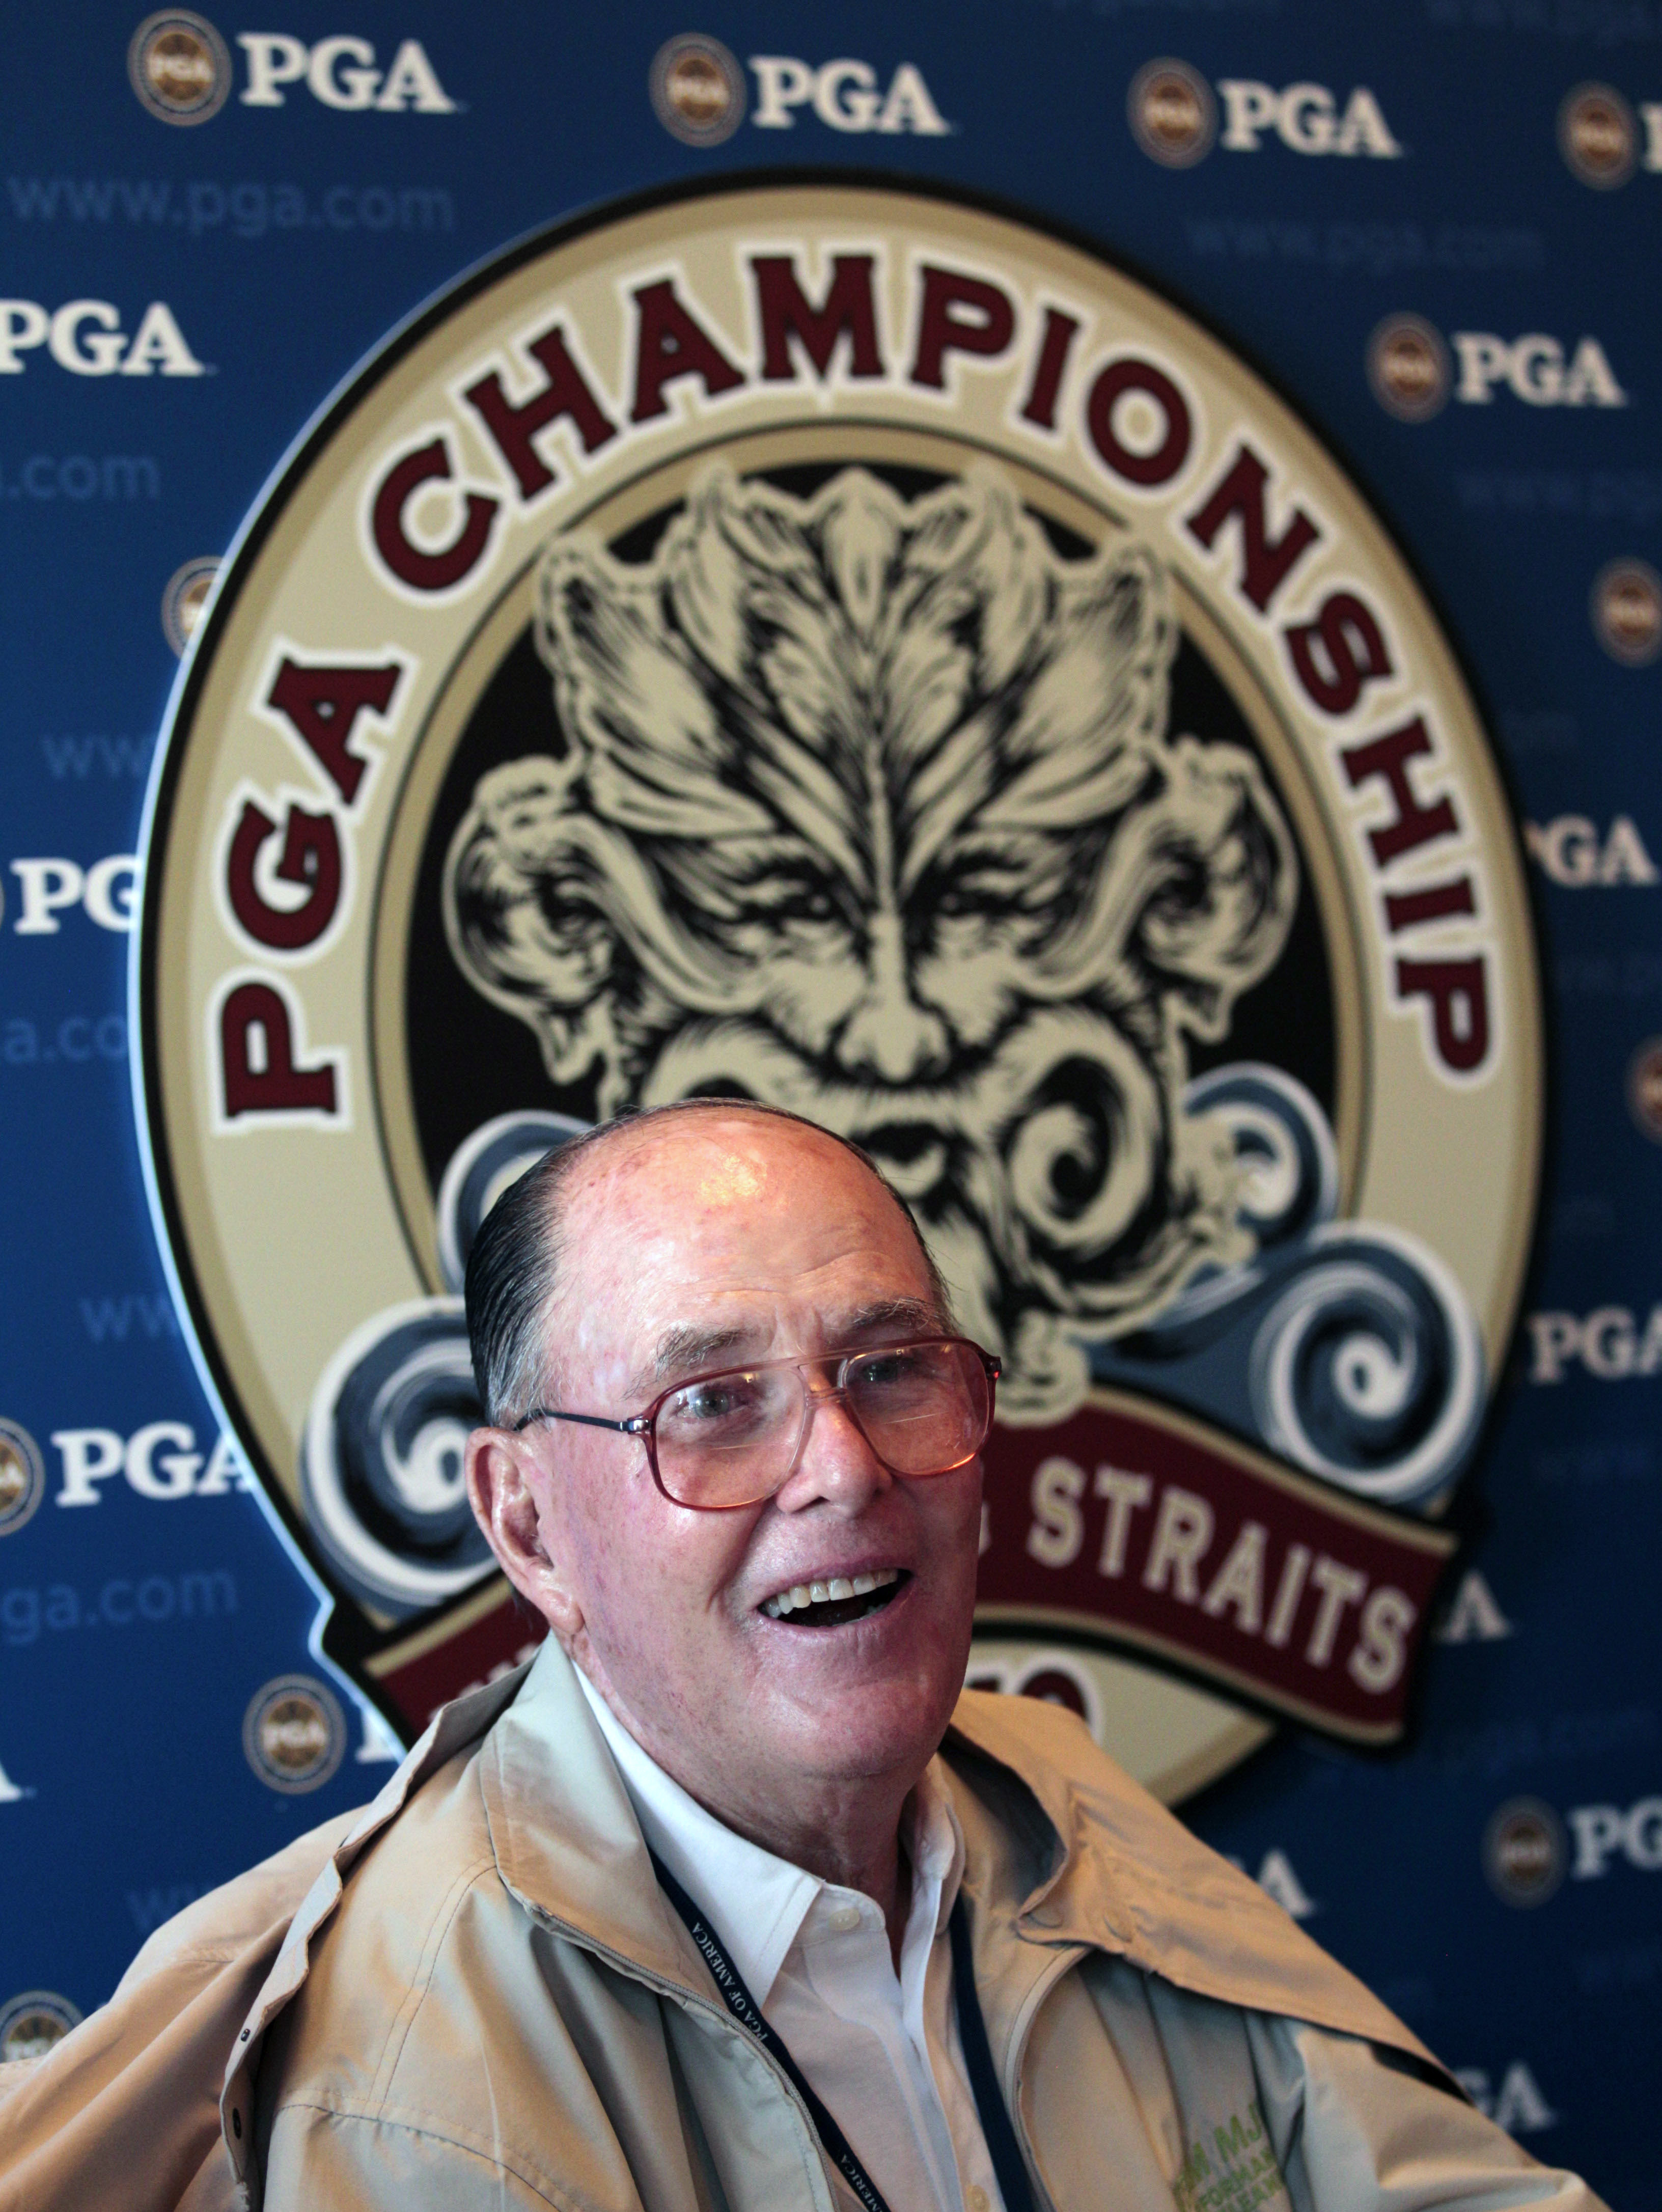 Golf lost one of its great design architects Thursday when Pete Dye died at age 94. Dye had been battling Alzheimer's disease for several years.